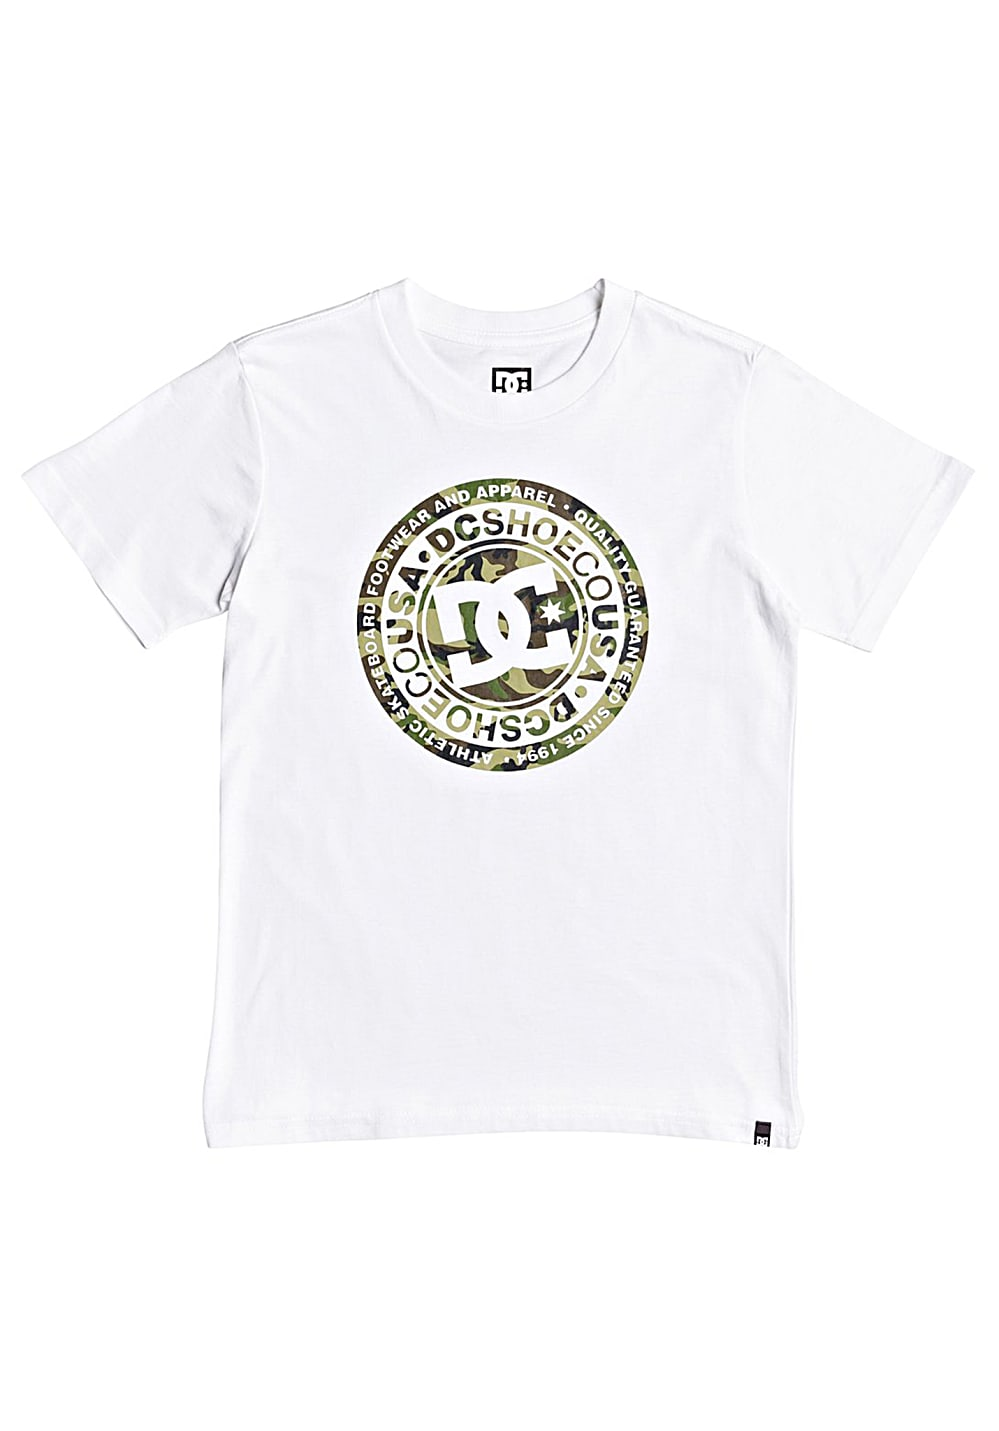 Boysoberteile - DC Circle Star 8 16 T-Shirt für Jungs Camouflage - Onlineshop Planet Sports